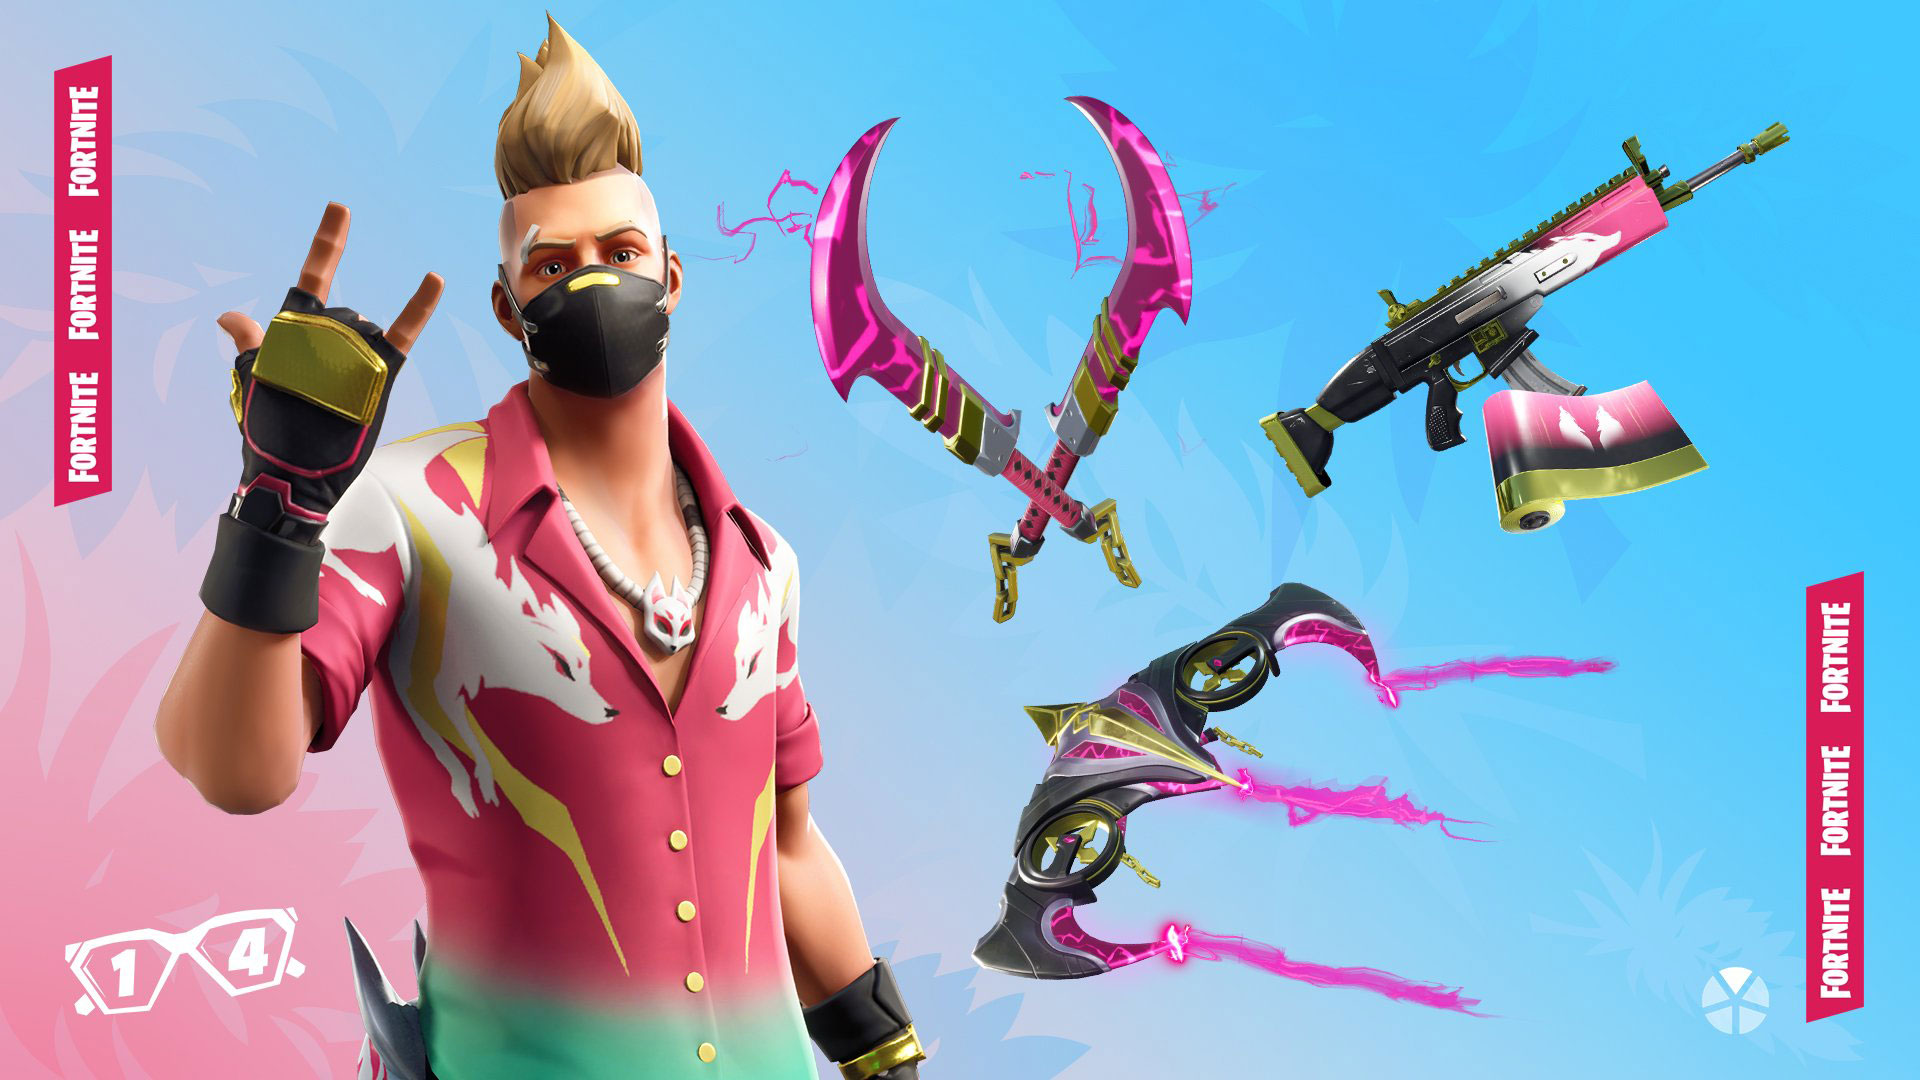 Fortnite Summer Drift Skin   Character PNG Images   Pro Game Guides 1920x1080